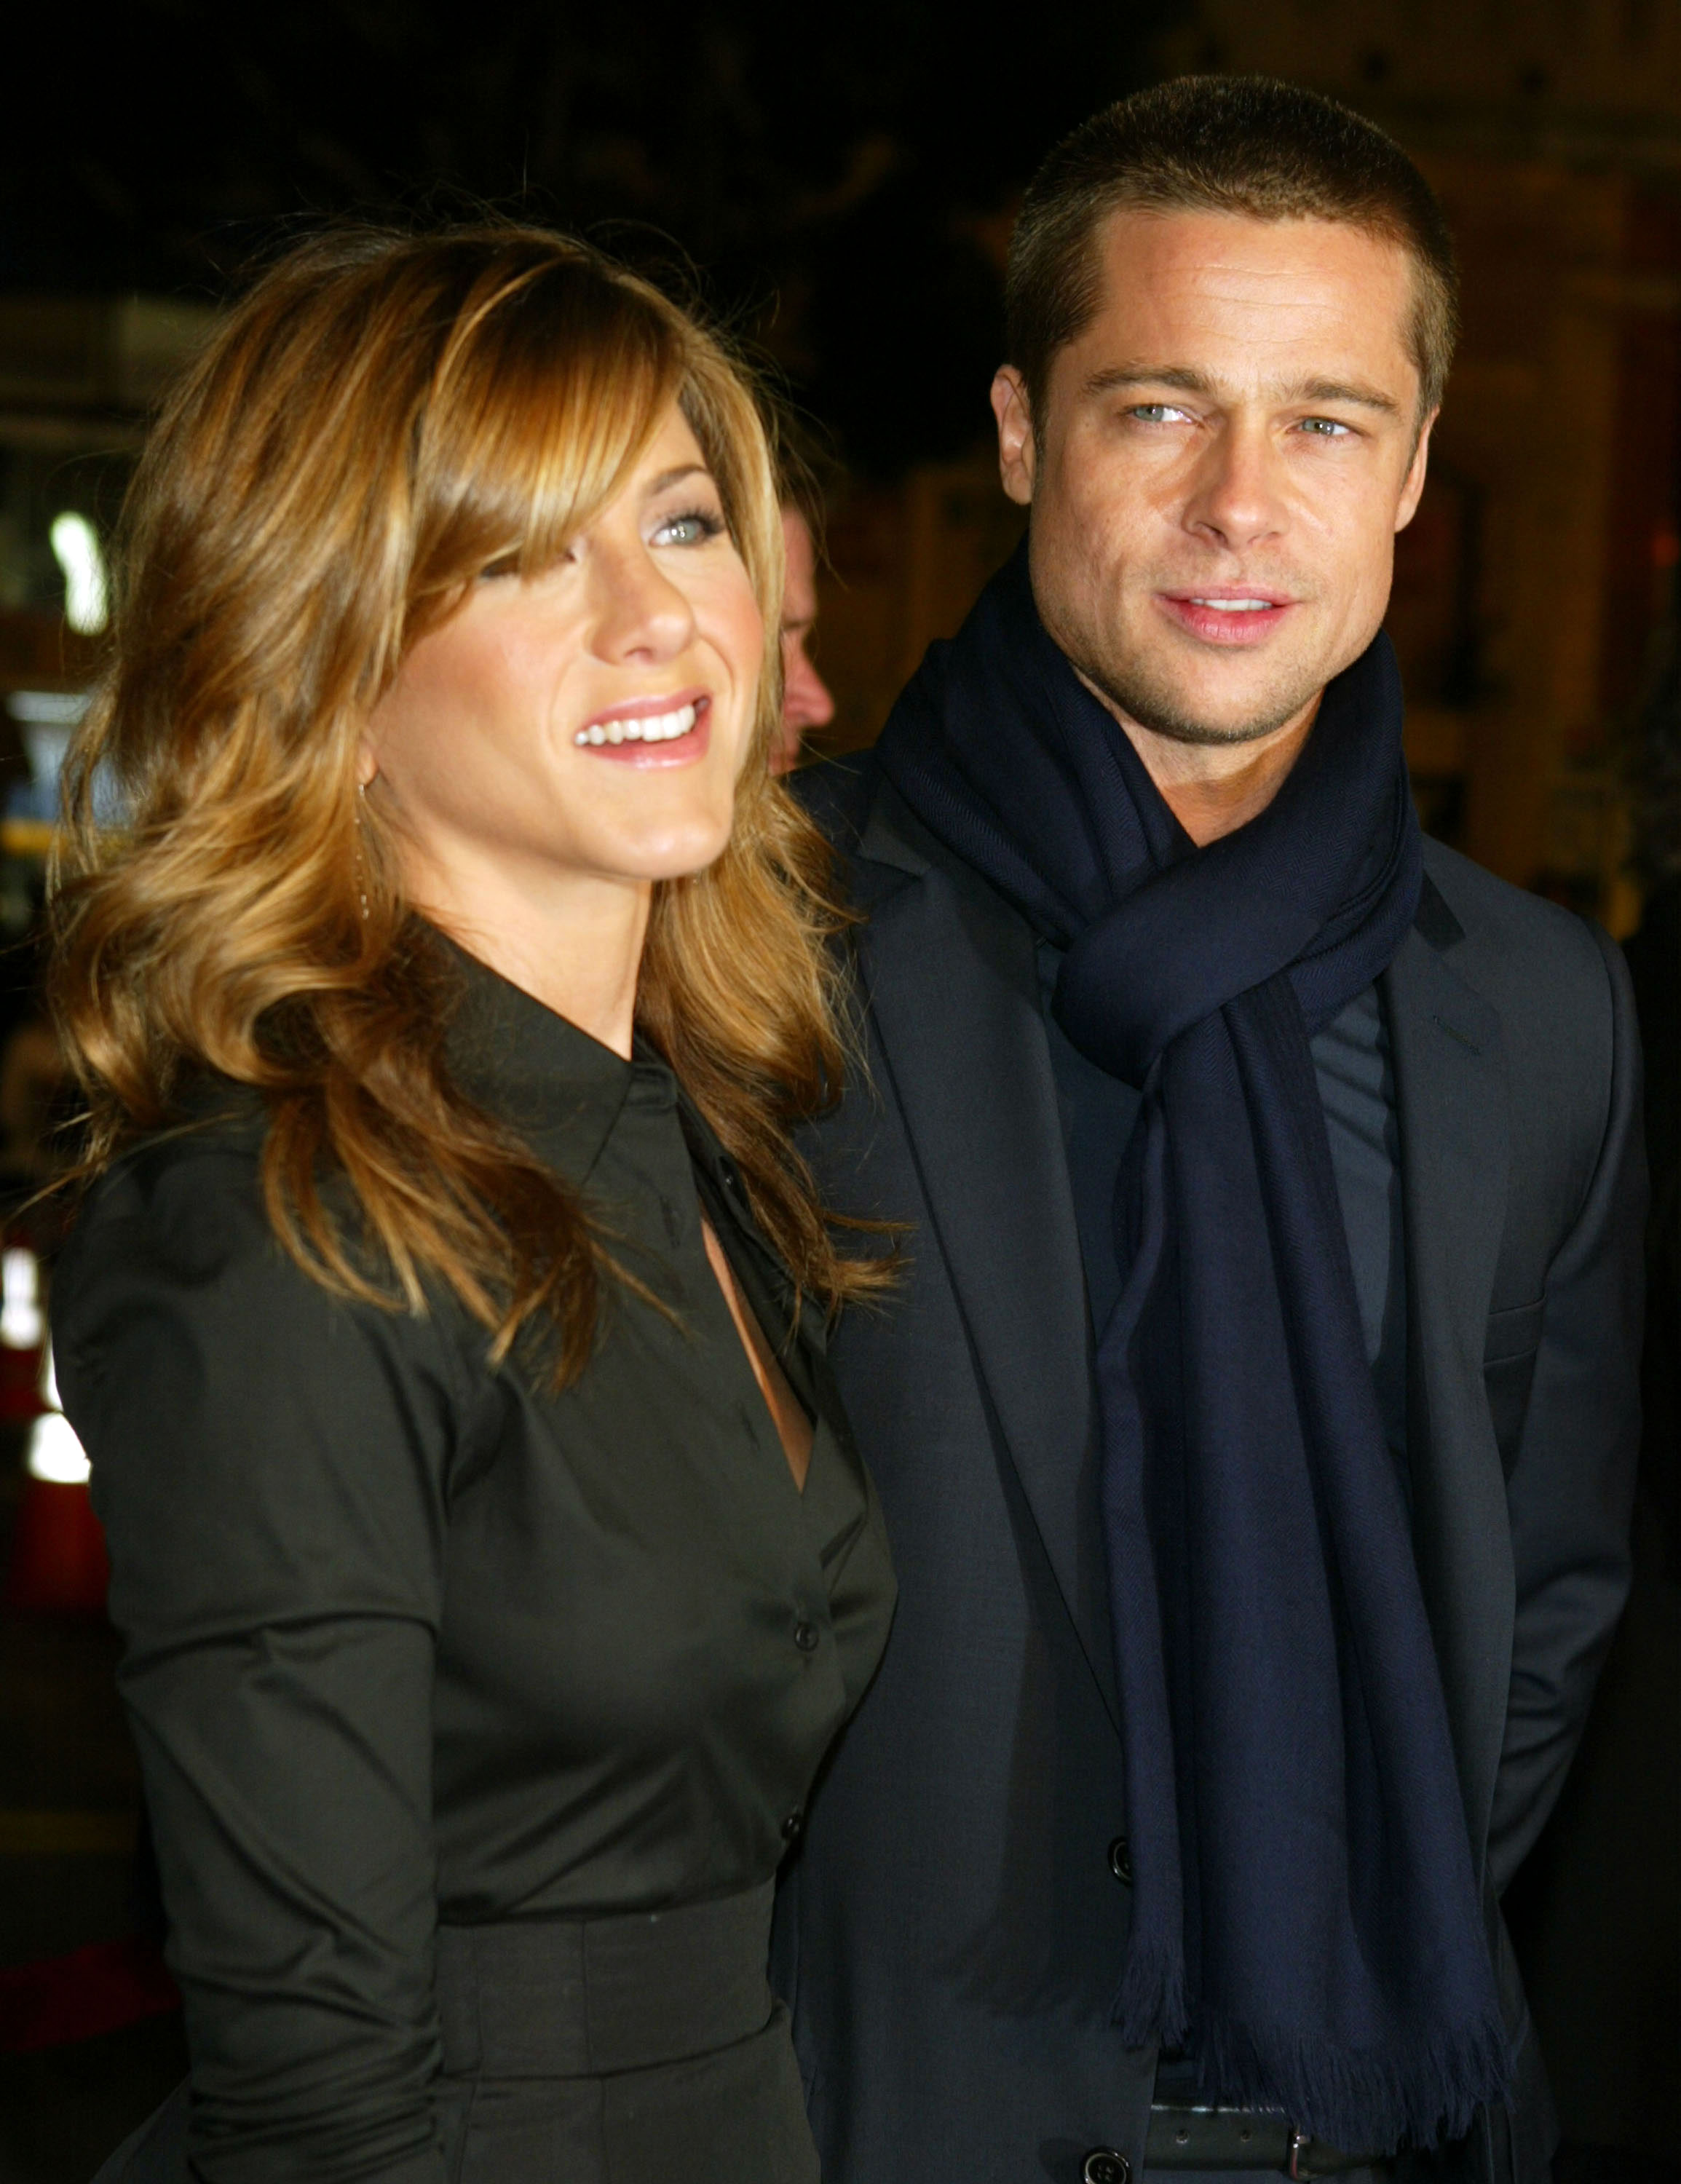 """Brad Pitt and Jennifer Aniston Relationship Timeline - Though Aniston has been vocal in recent years about her plans to forego motherhood, she was whistling a different tune in 2004. """"It's time. It's time. You know, I think you can work with a baby, I think you can work pregnant, I think you can do all of it,"""" she said of starting a family with her then-husband."""